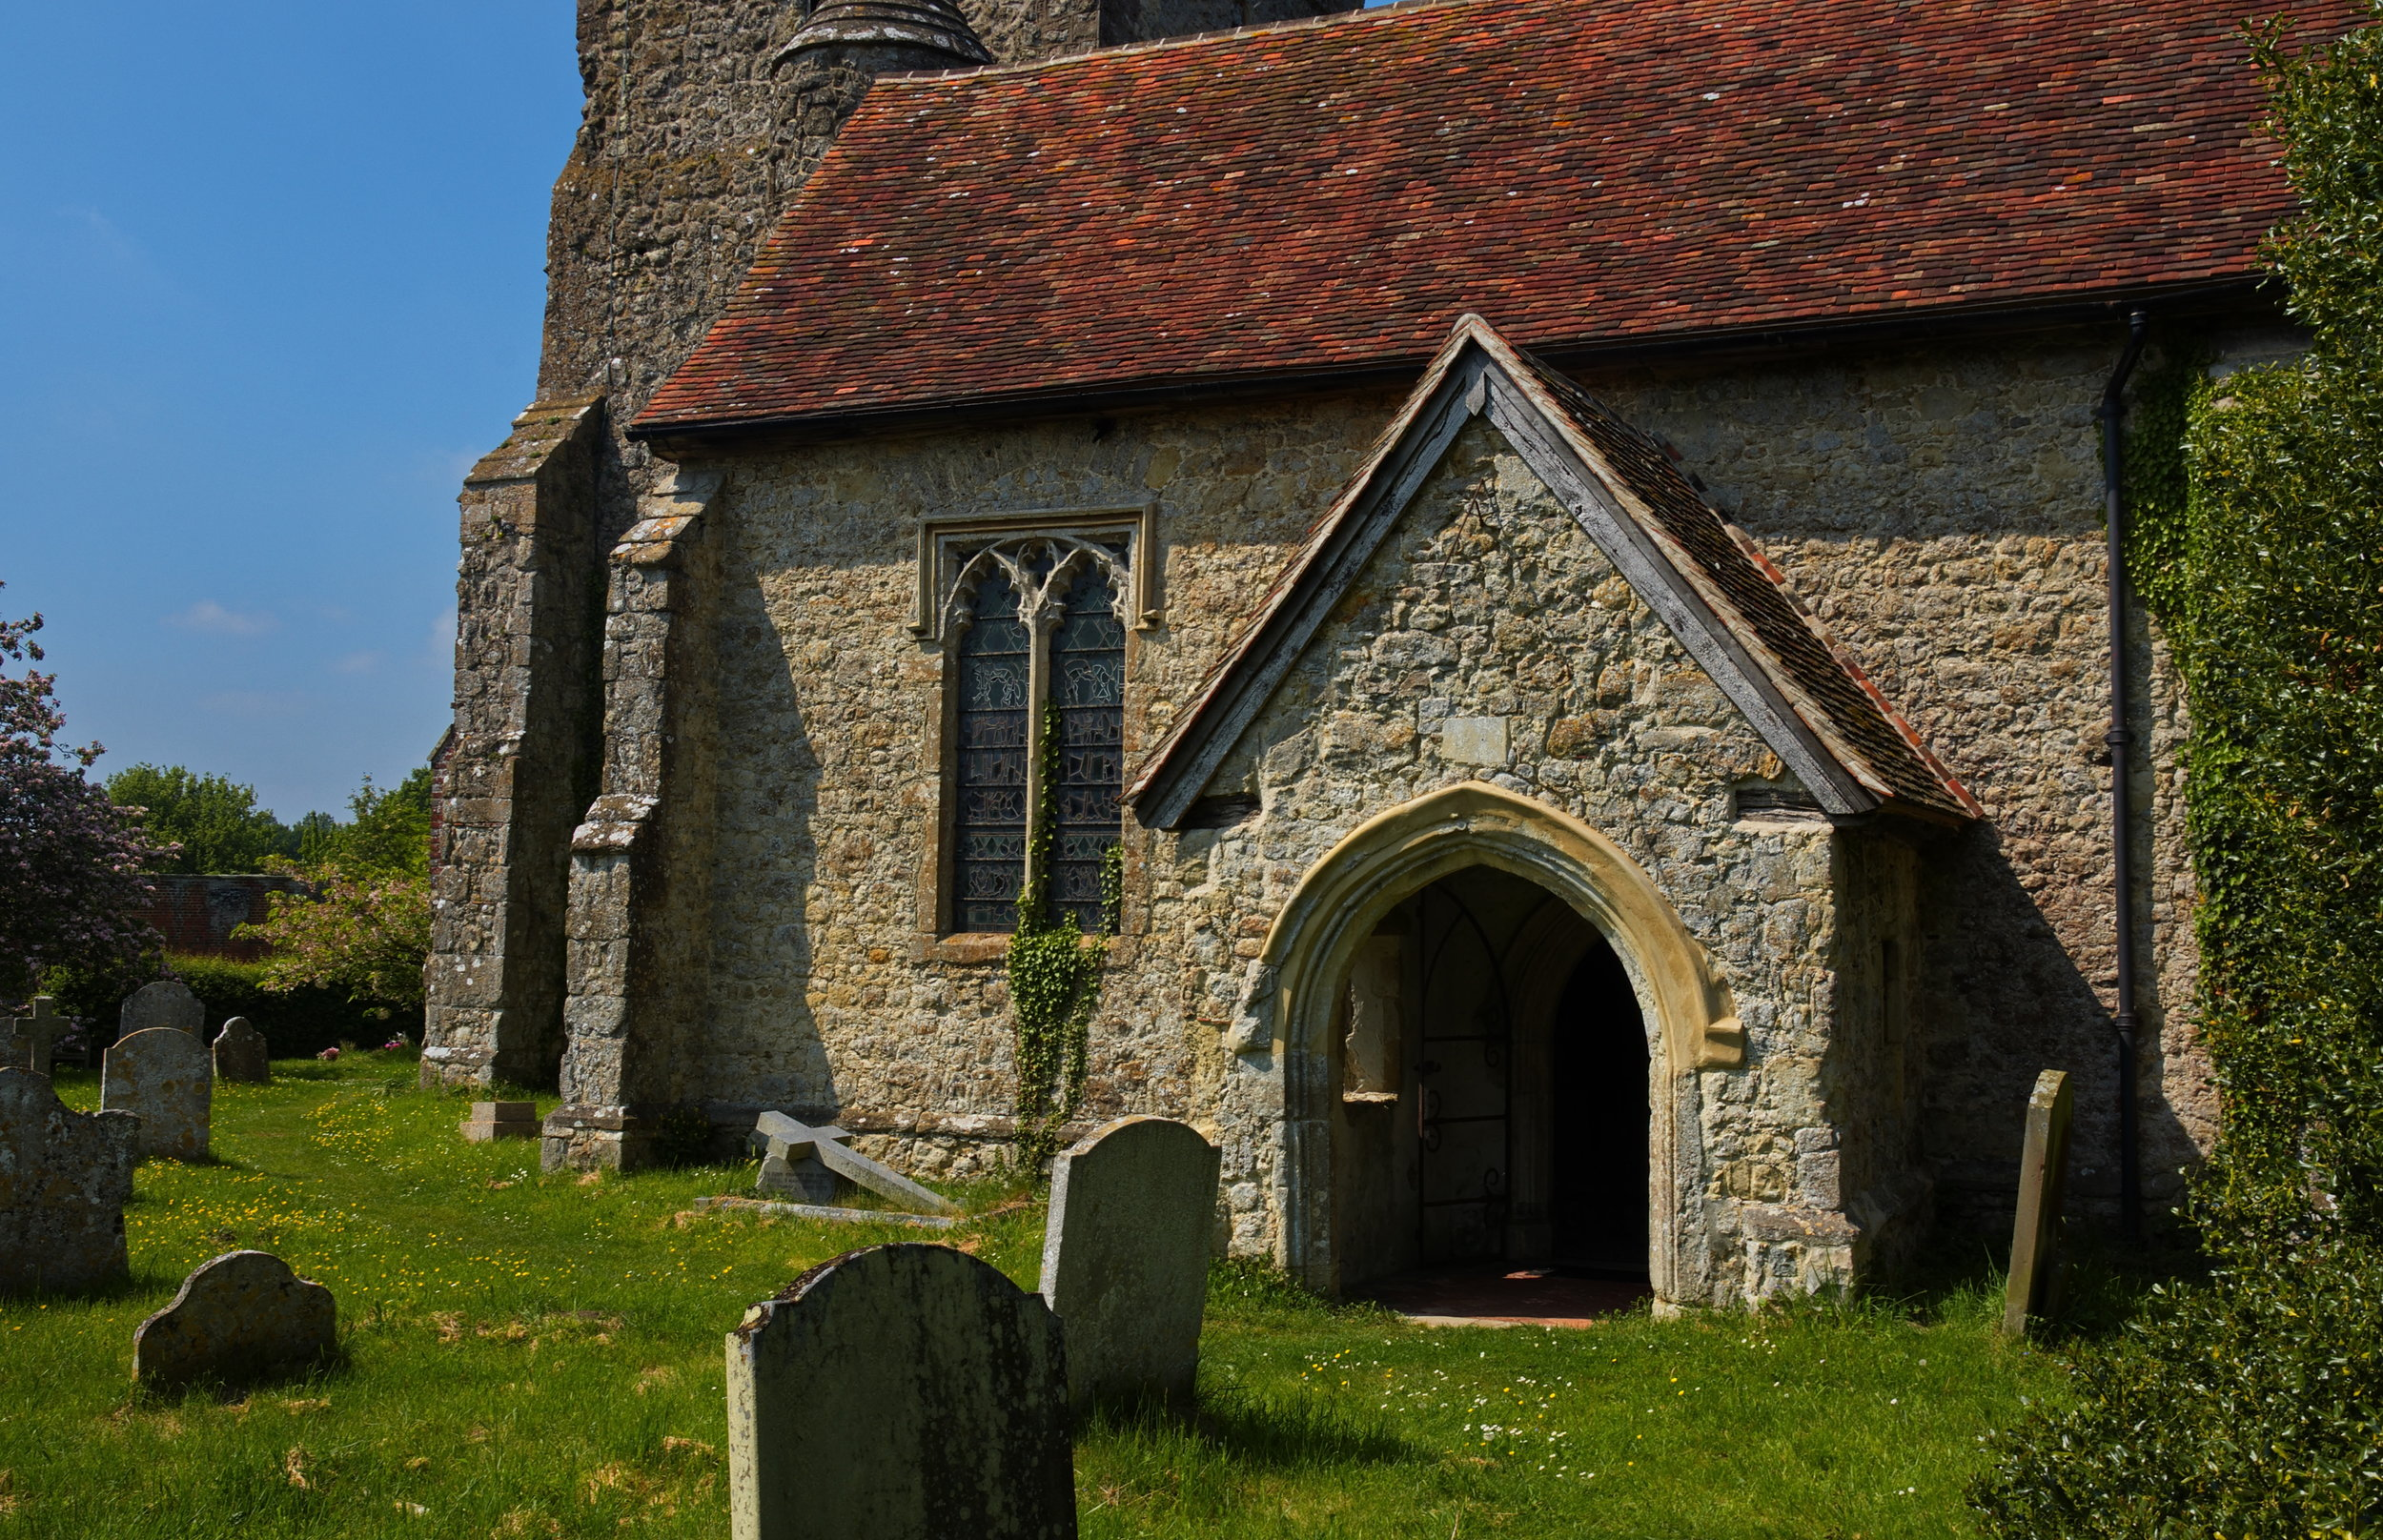 porch-of-st-margarets-church-hothfield_46480385835_o.jpg